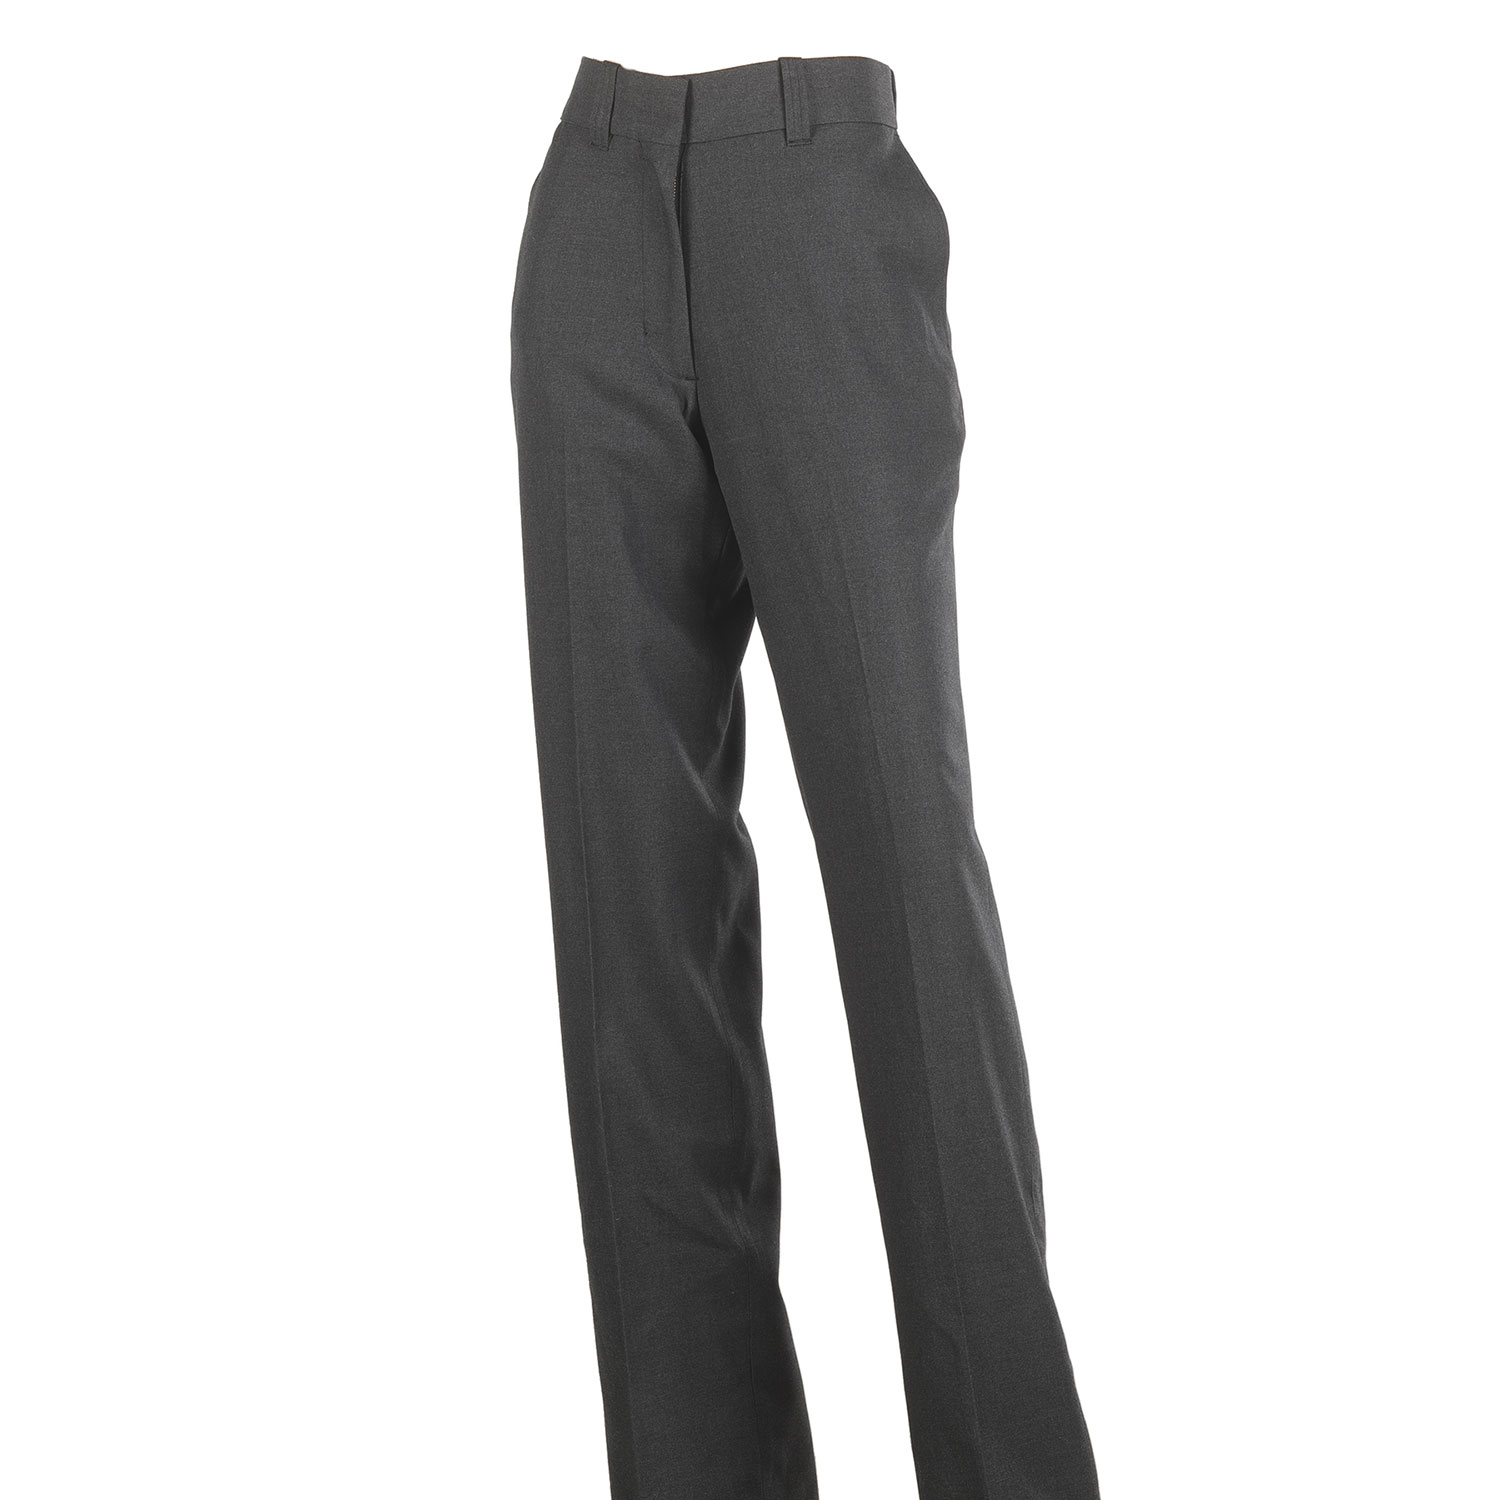 Galls FBOP Women's Class A Uniform Trousers (Charcoal)